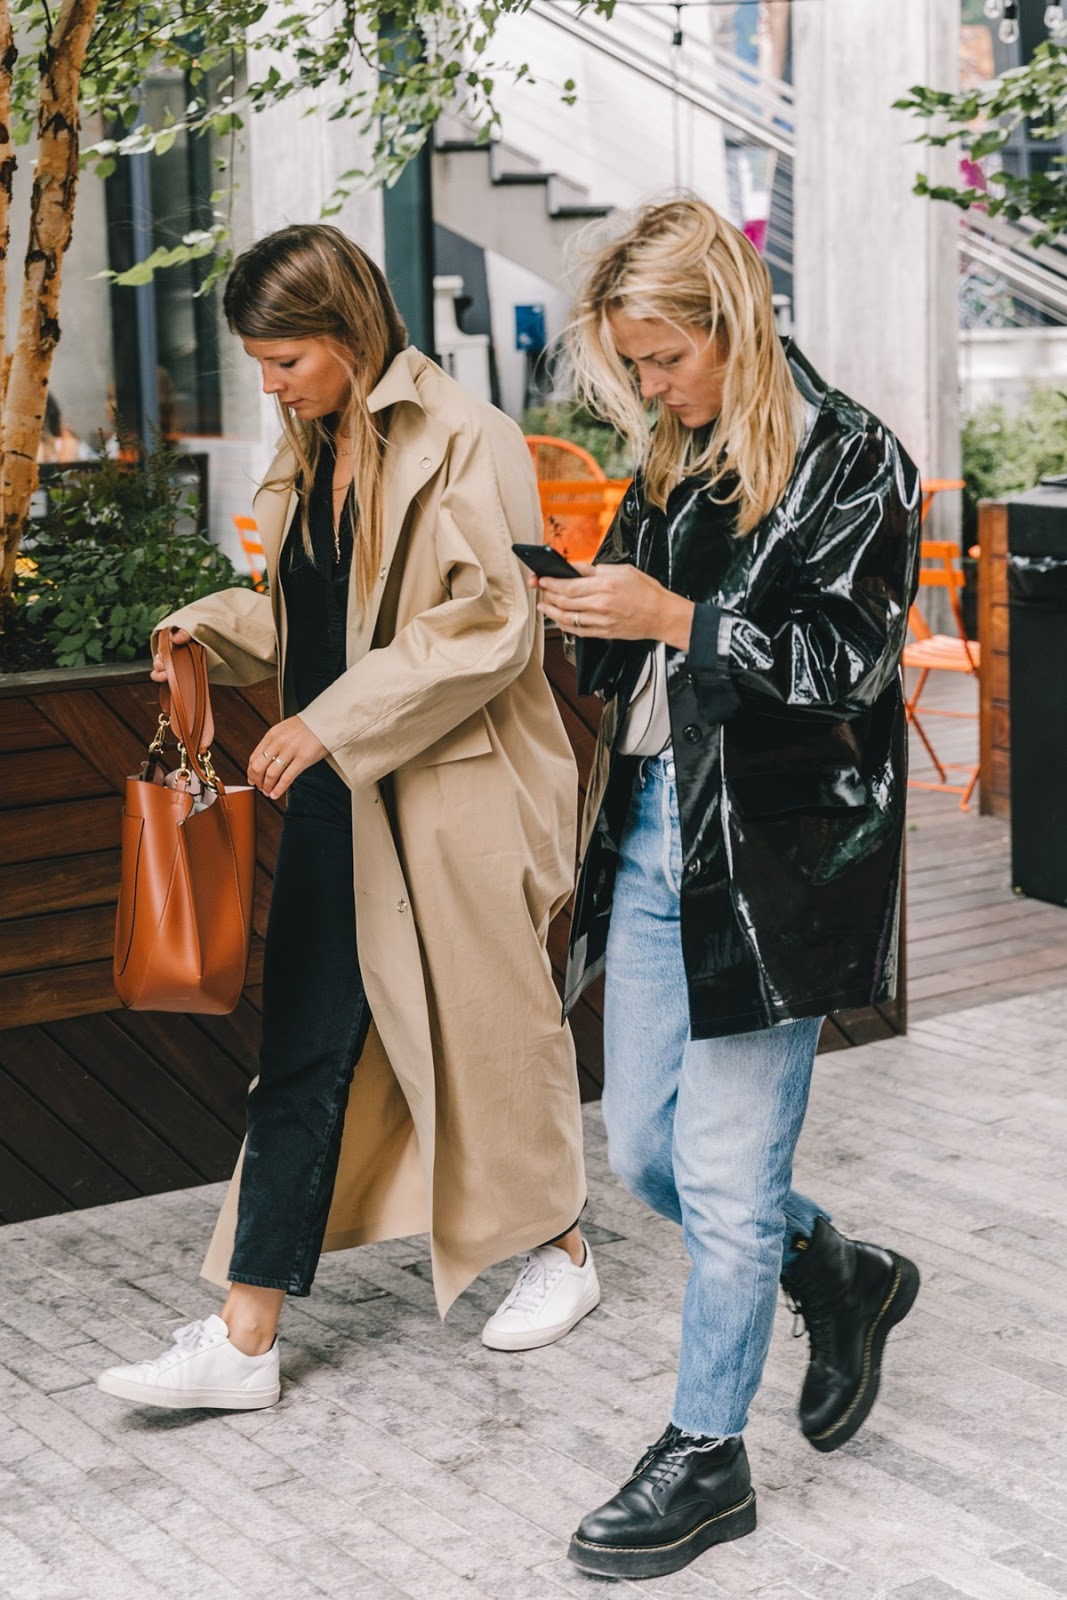 The Best Under-$100 Items From the Shopbop Sale – Street Style Fall Outfit Inspiration